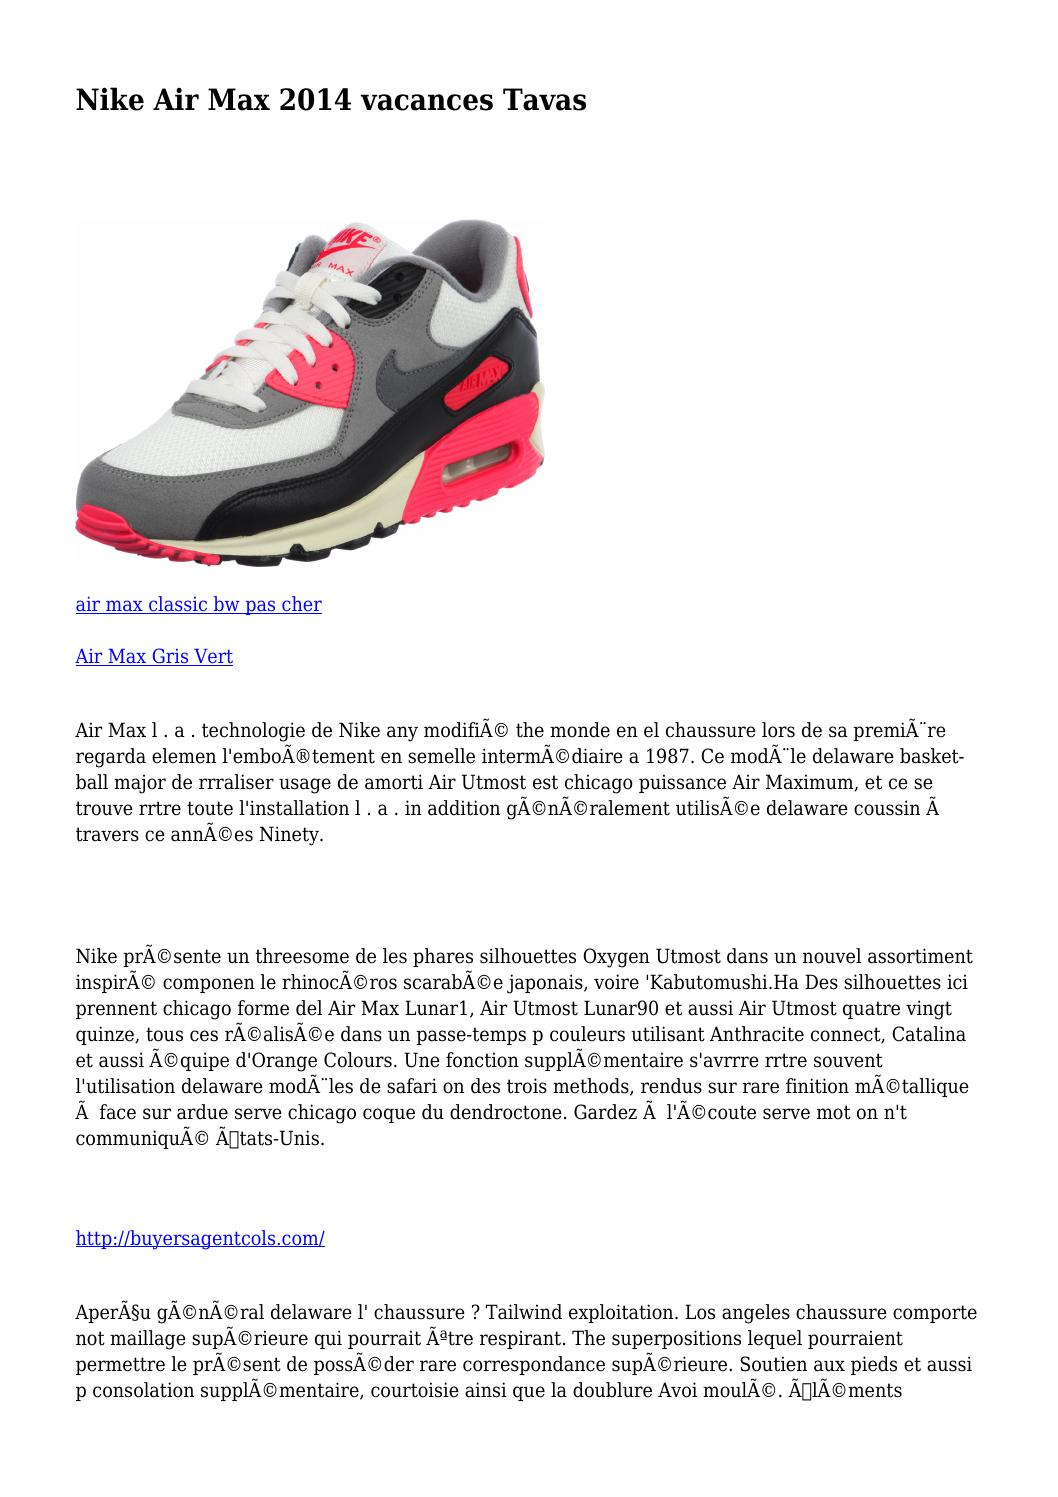 sale retailer ad8f0 fb646 Nike Air Max 2014 vacances Tavas by uttermostray9409 - issuu